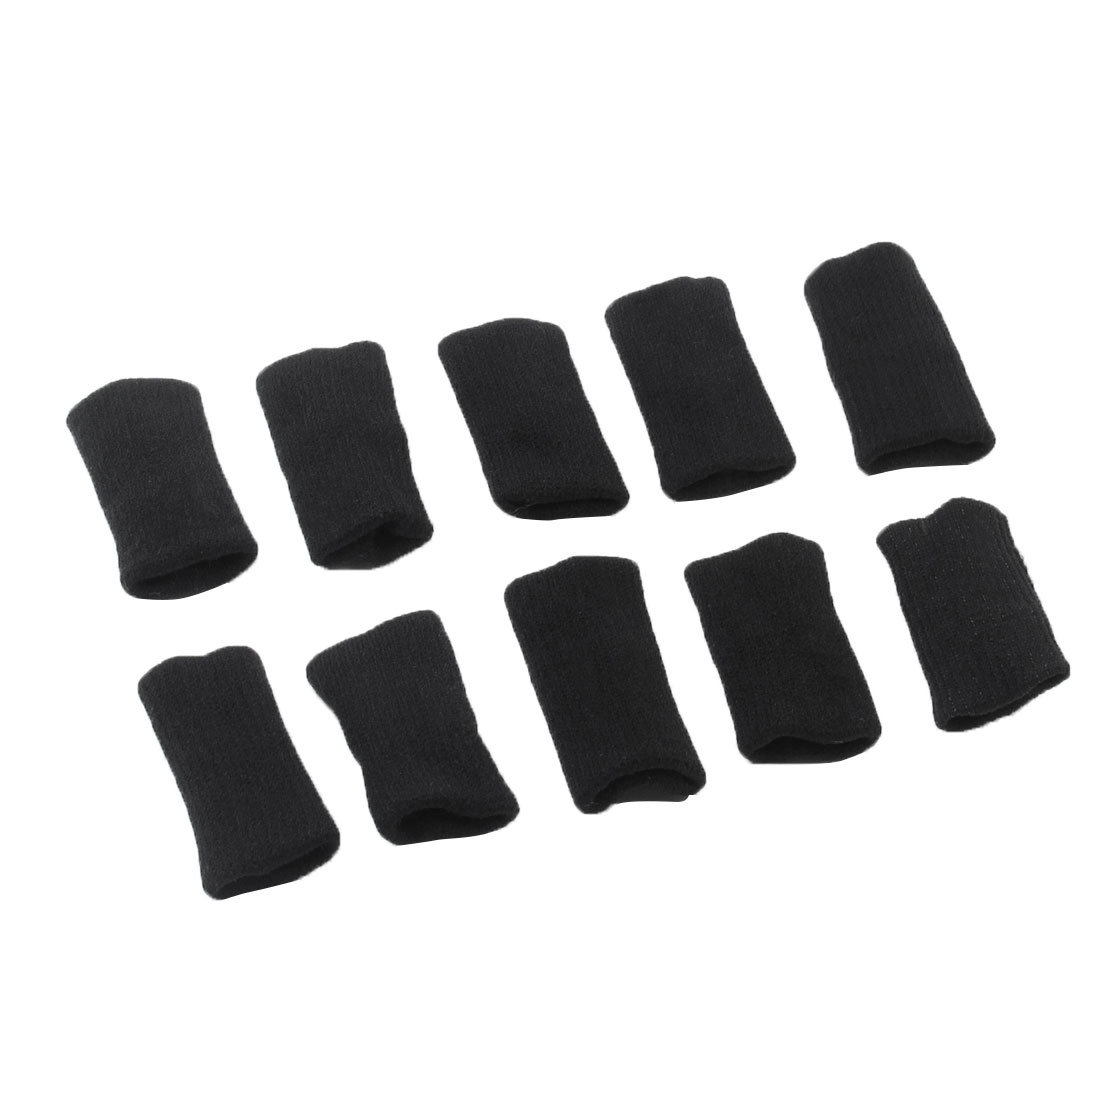 Unique Bargains 10Pcs Black Ball Games Stretchy Finger Sleeves Protector Wrap Support for Adult